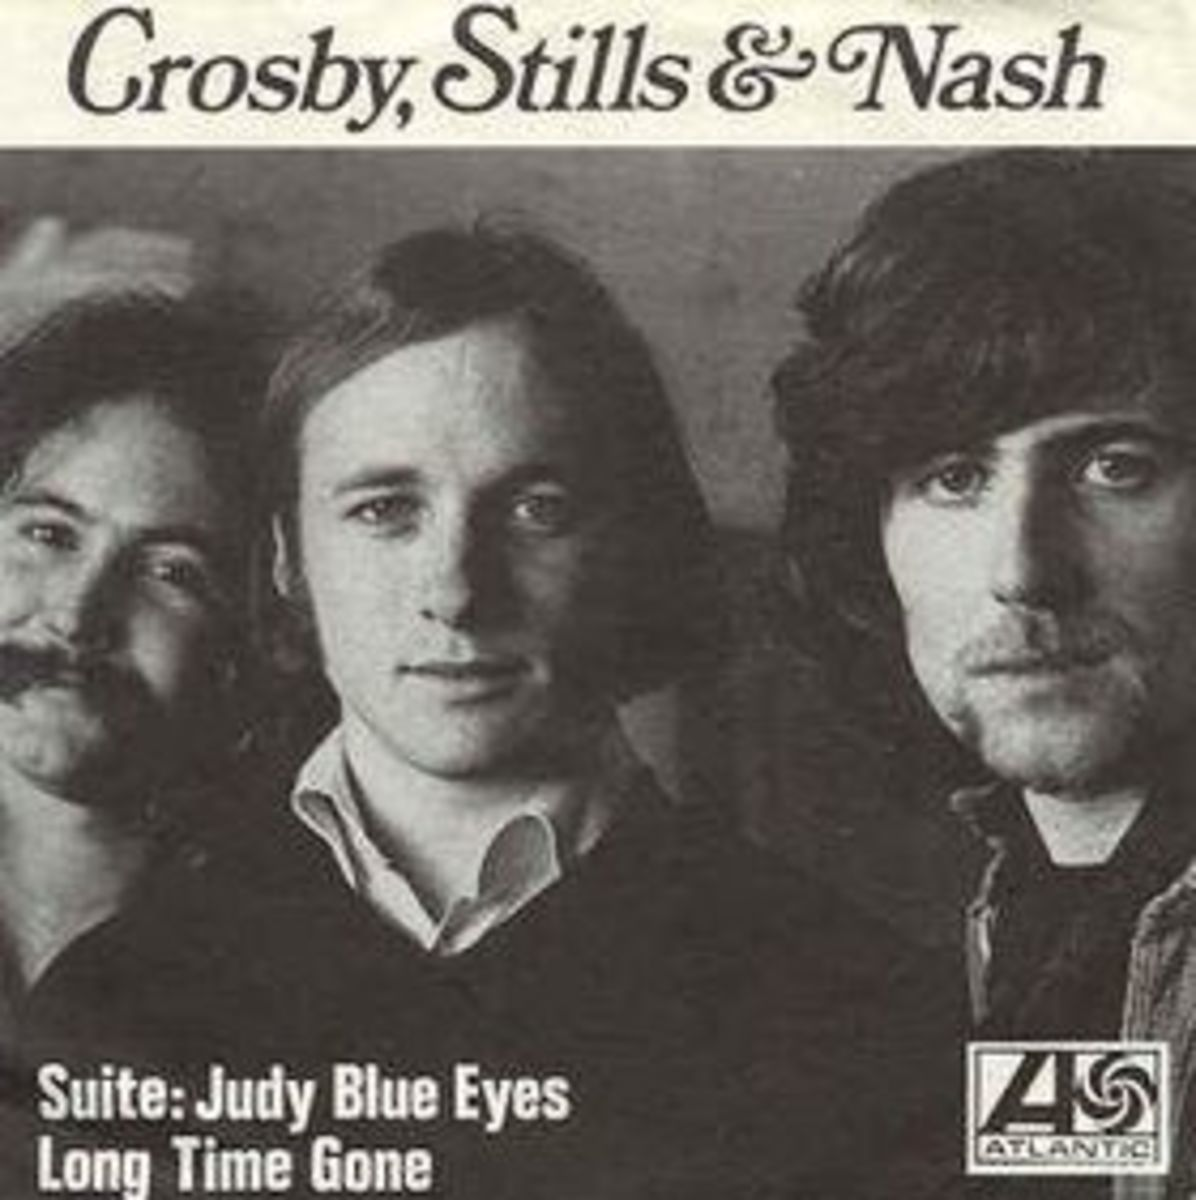 Suite: Judy Blue Eyes single cover.